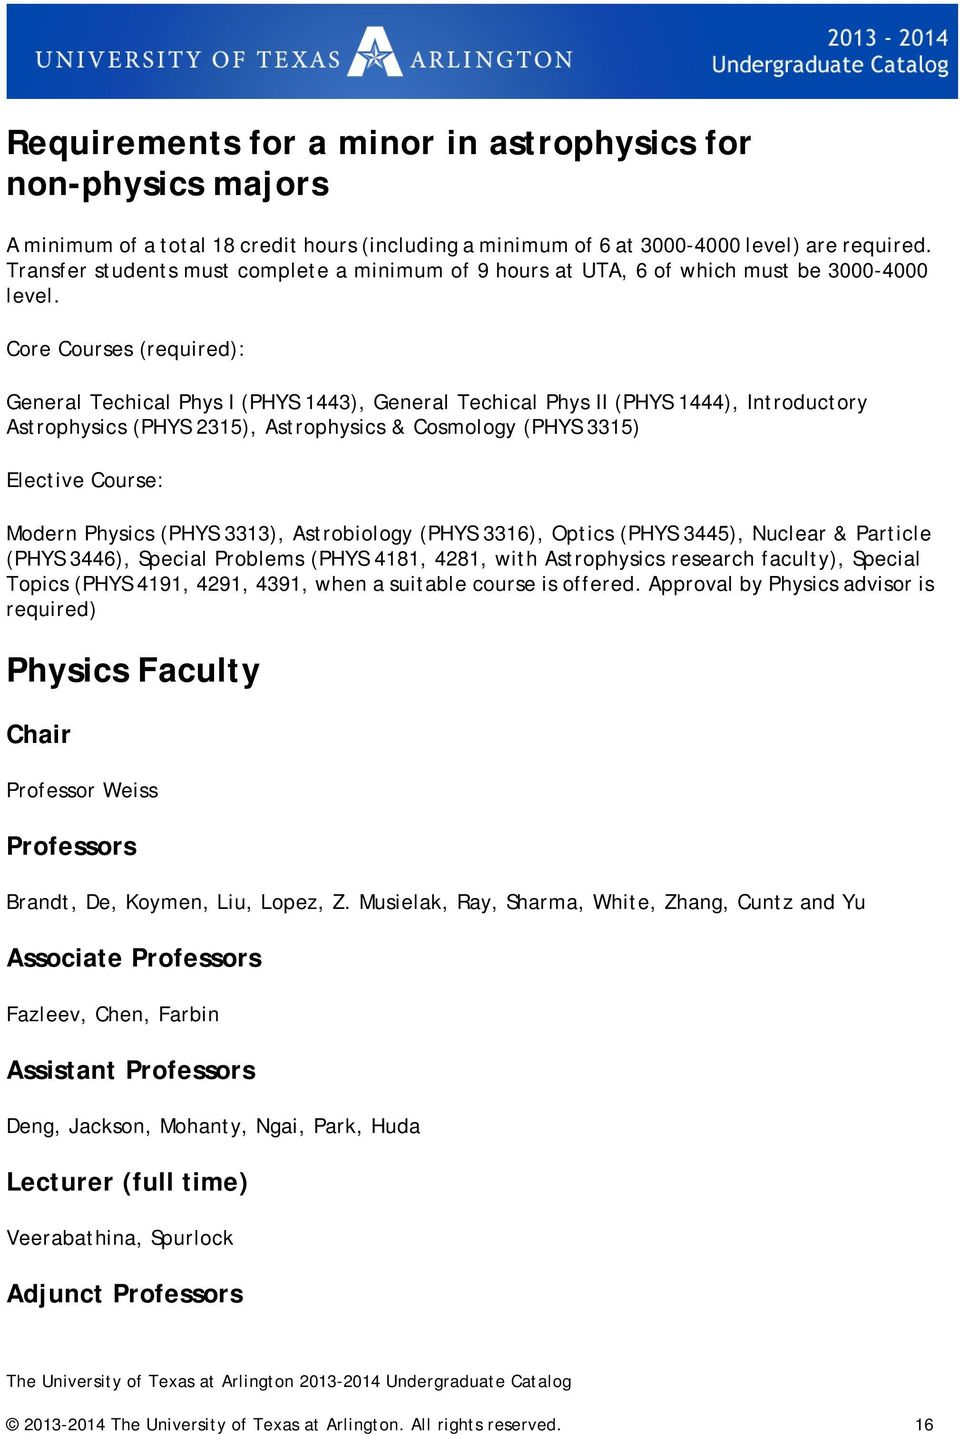 Core Courses (required): General Techical Phys I (PHYS 1443), General Techical Phys II (PHYS 1444), Introductory Astrophysics (PHYS 2315), Astrophysics & Cosmology (PHYS 3315) Elective Course: Modern